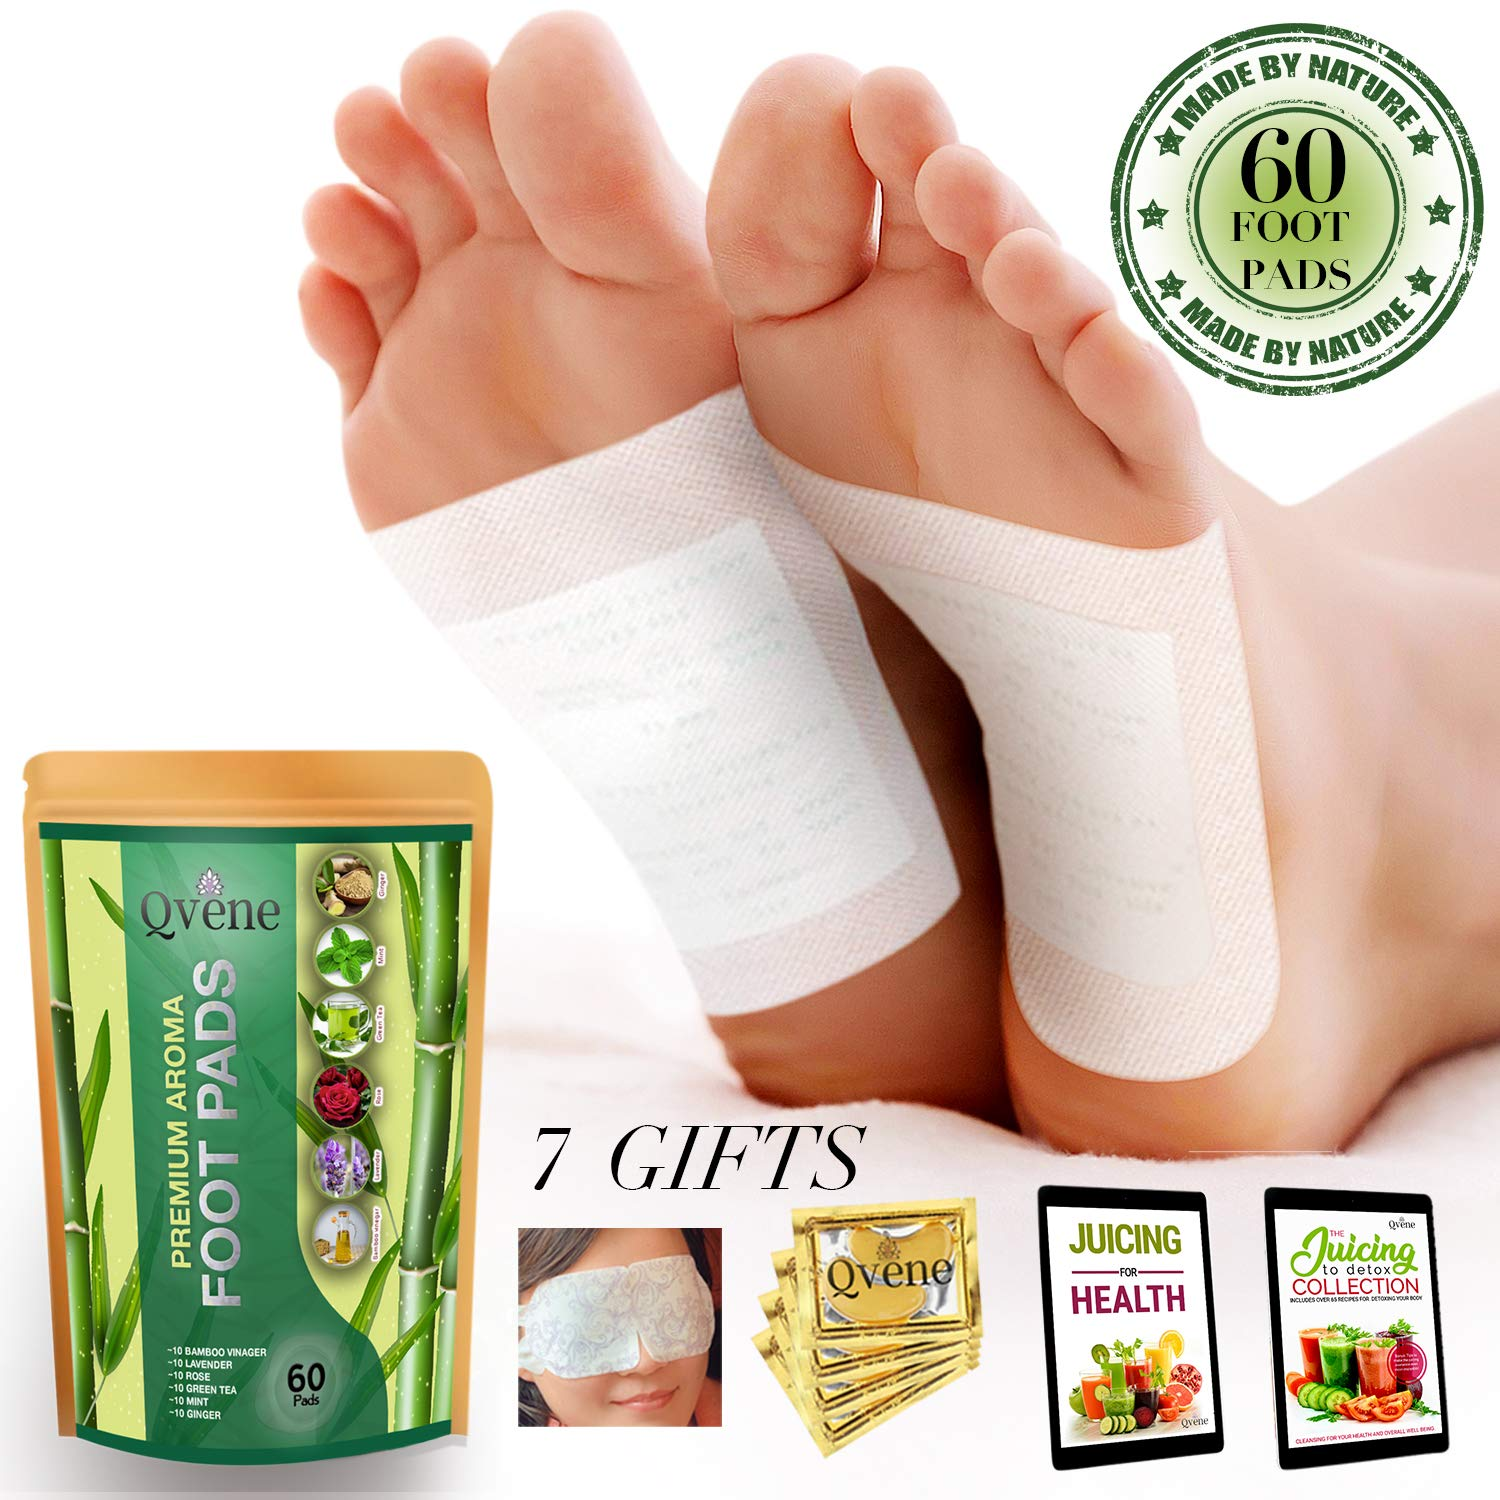 Qvene (60pcs) Premium Aromatherapy Body Cleanse Foot Pads - Natural Sleeping Aid, Stress Relief, Pain Relief, Organic Pads for Foot Care - 60 Pads, plus Bonus Products